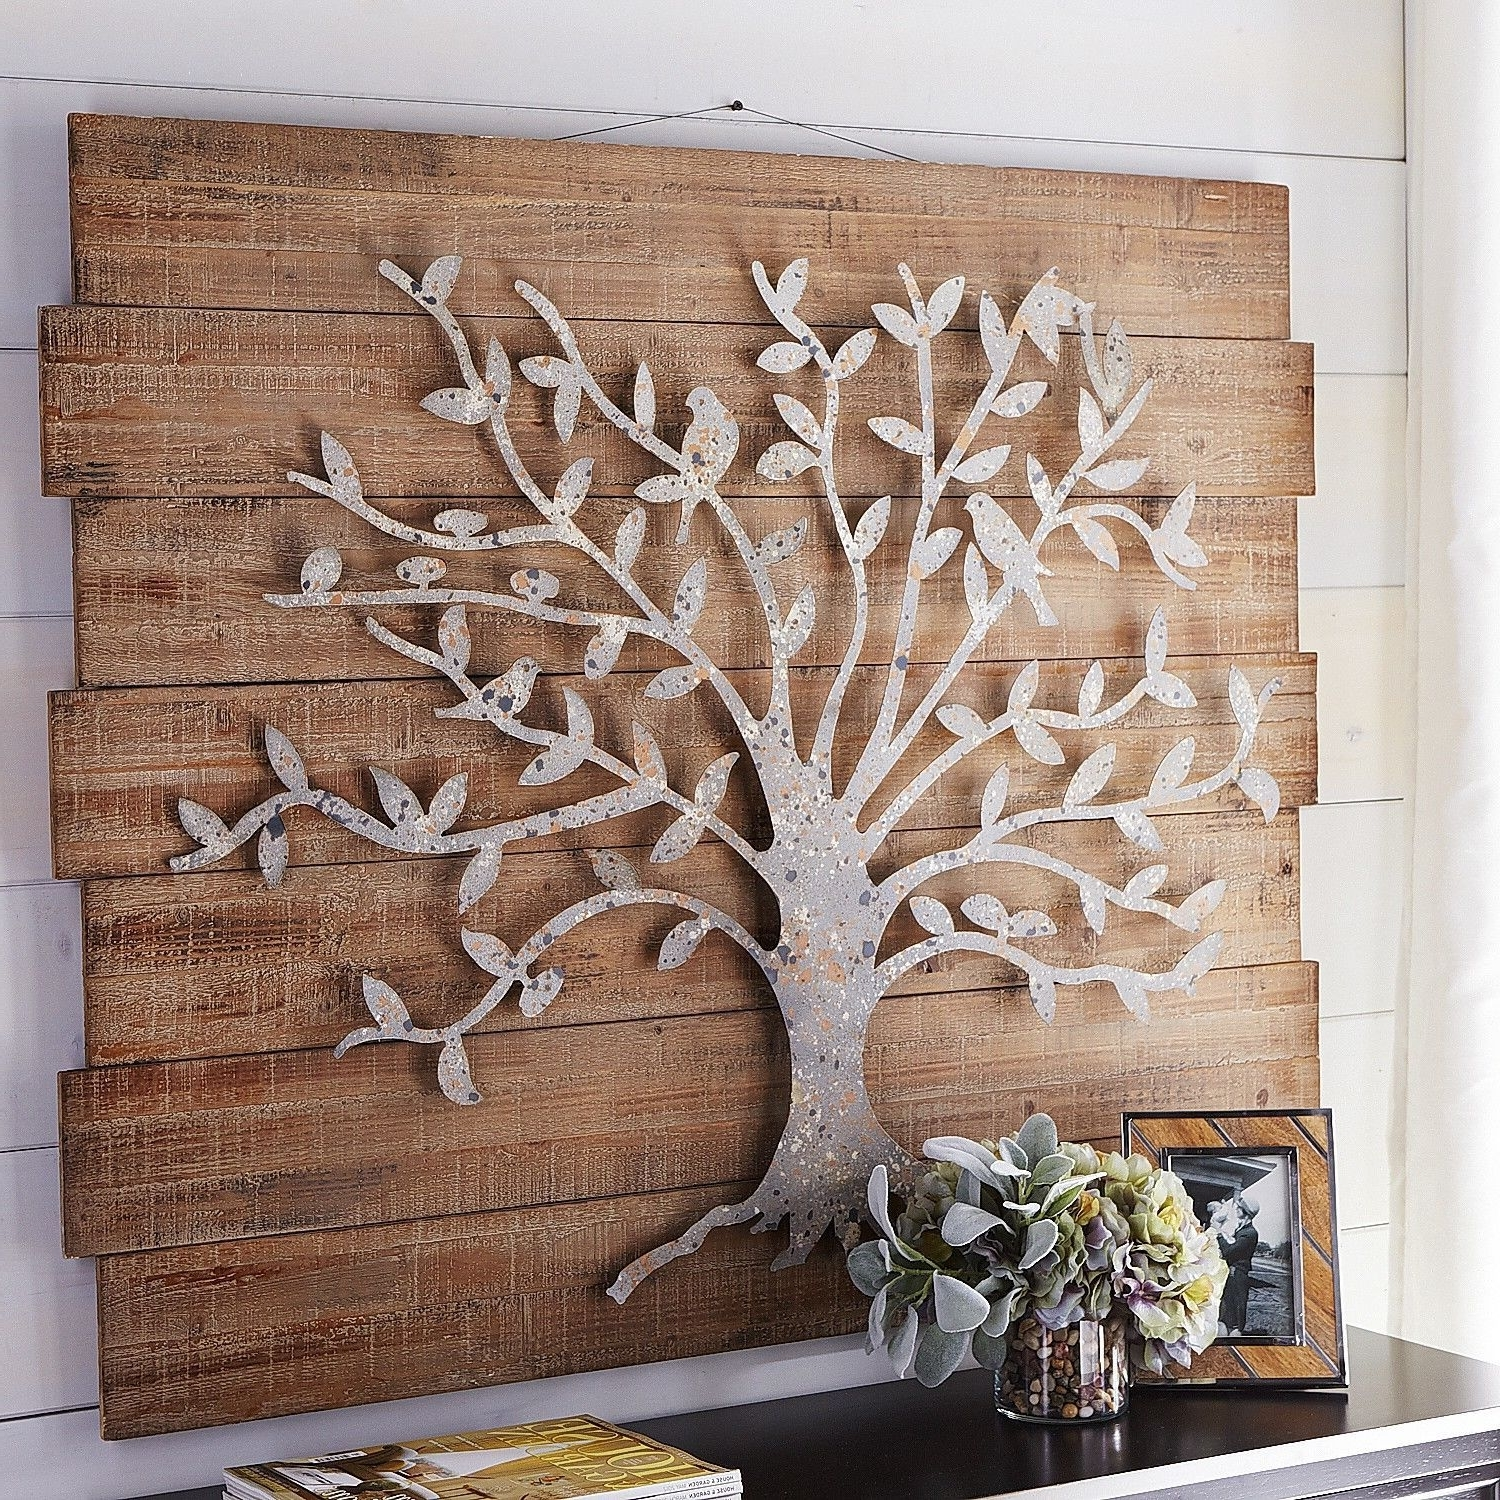 Newest Unique Metal Tree With Birds Wall Art Good Ideas Large Metal Tree Intended For Large Metal Wall Art (Gallery 15 of 15)